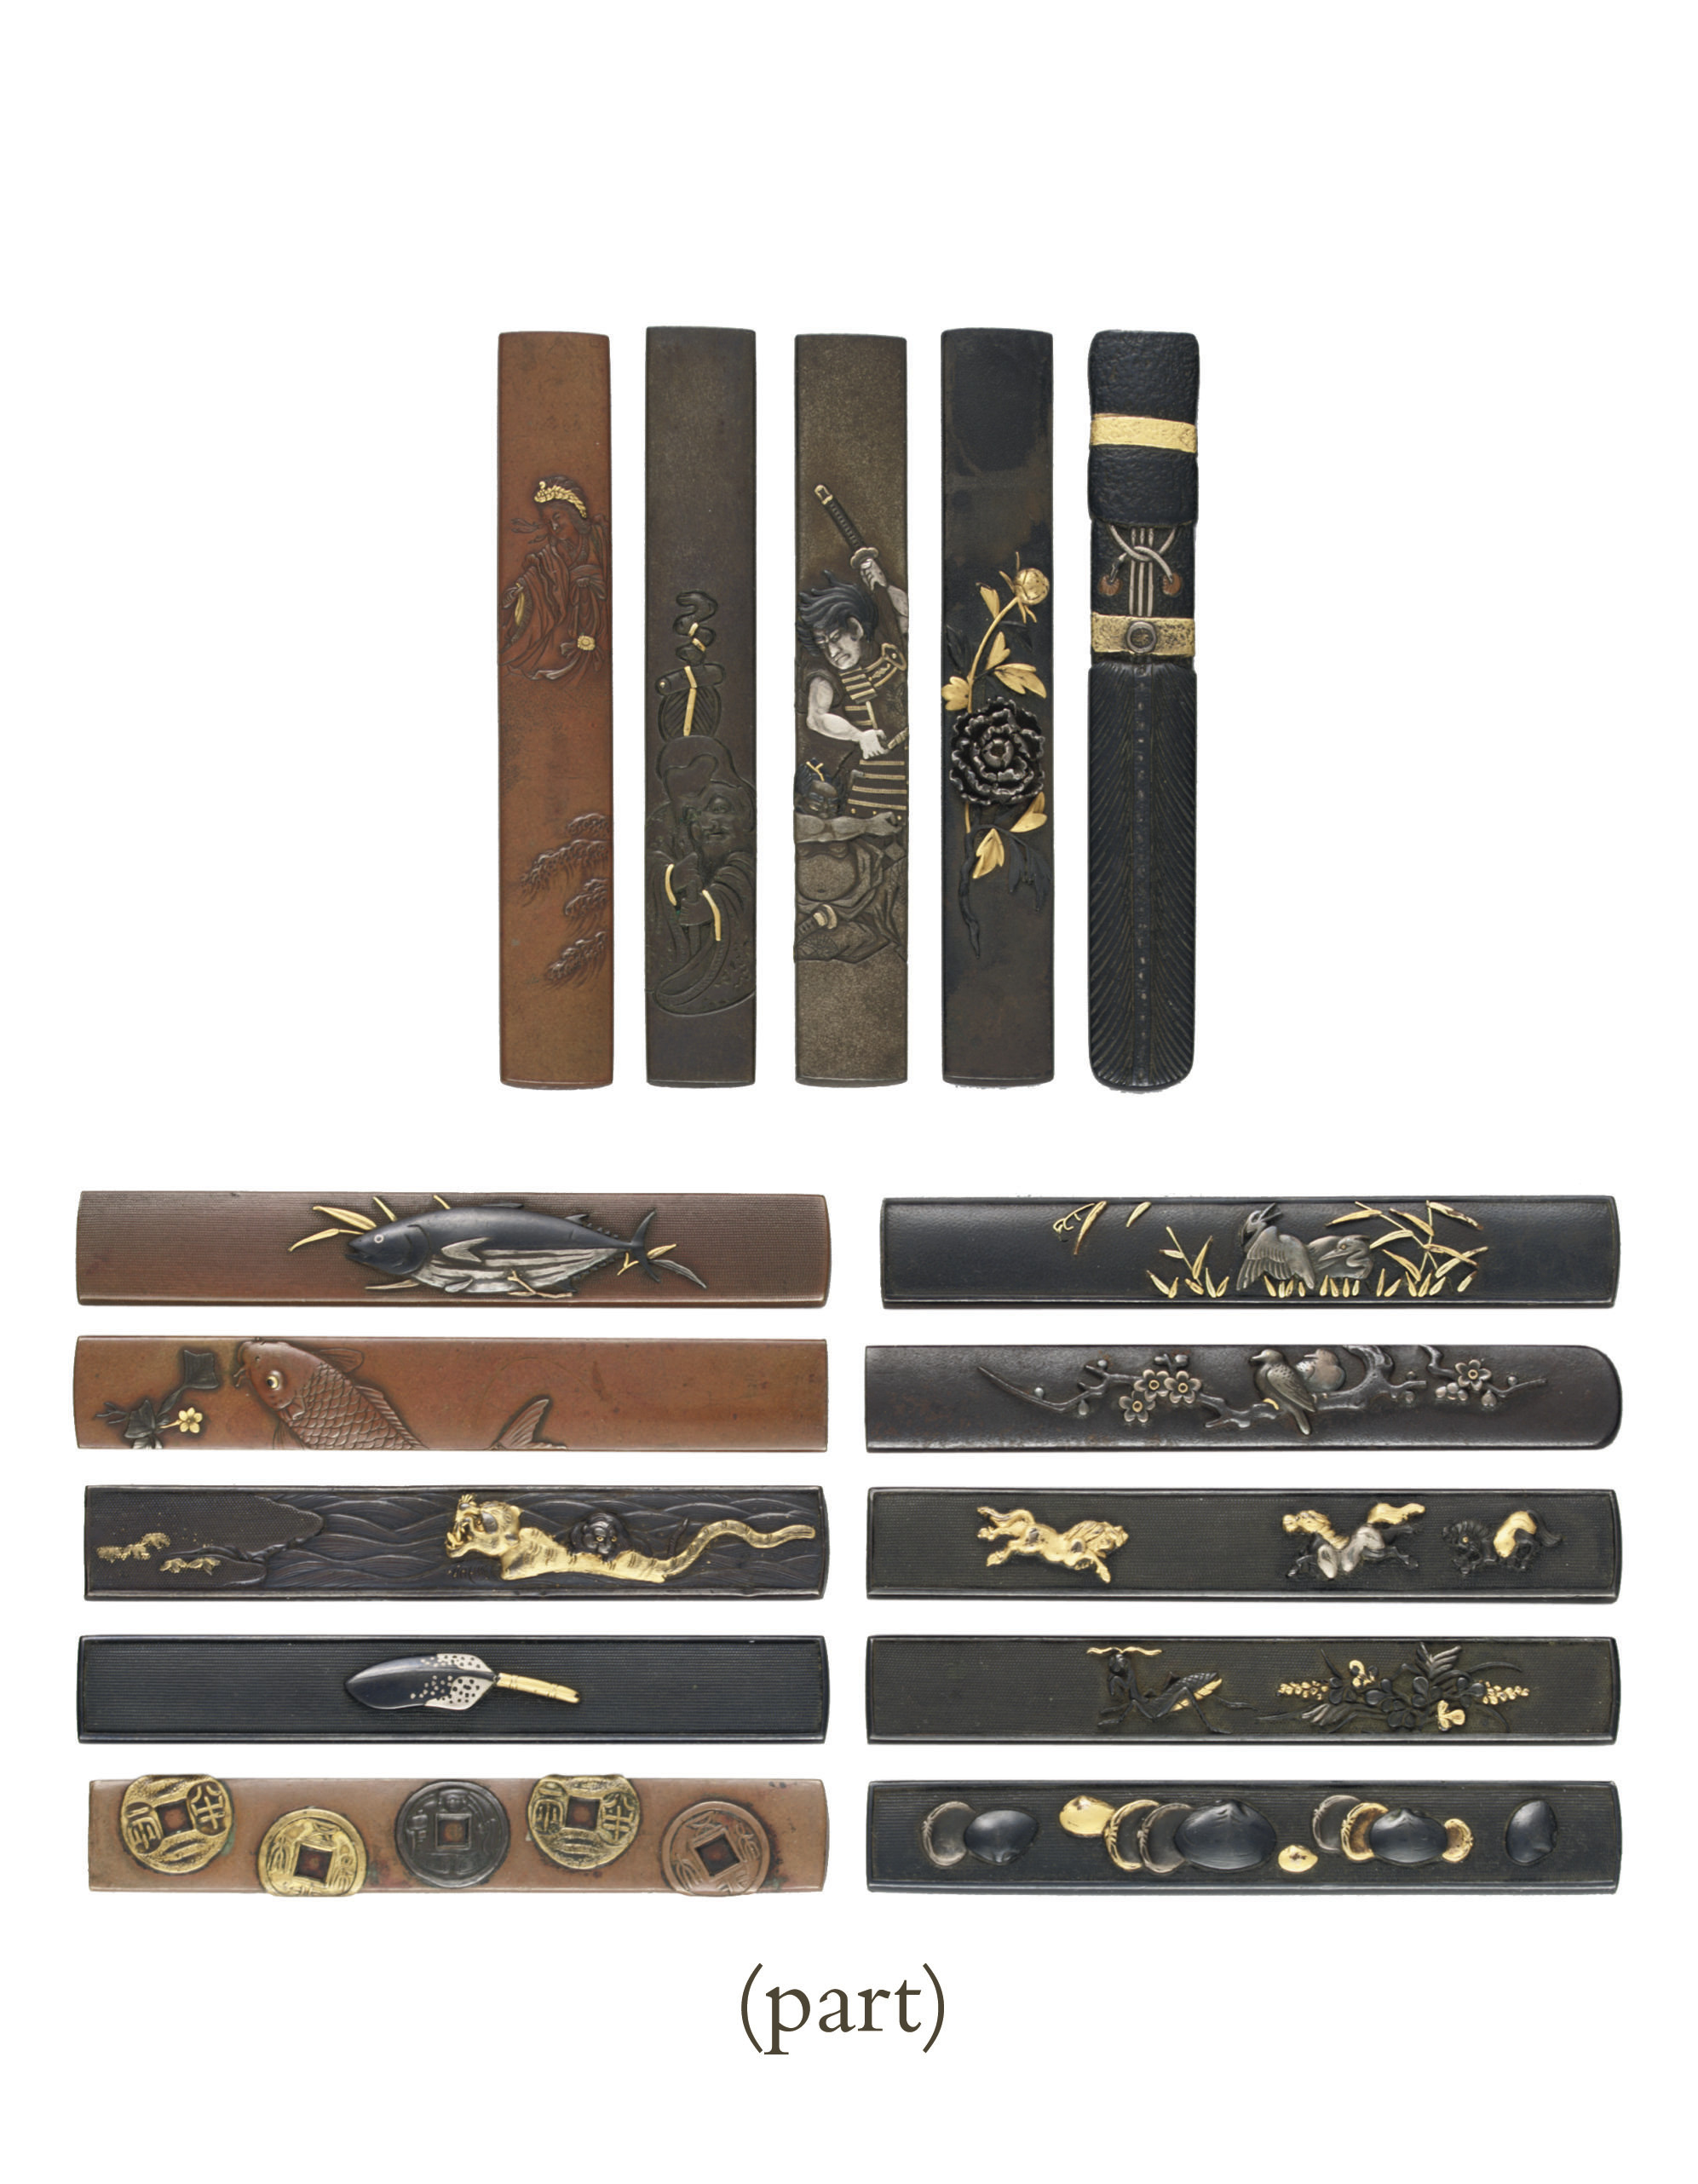 A group of sixty-five kozuka